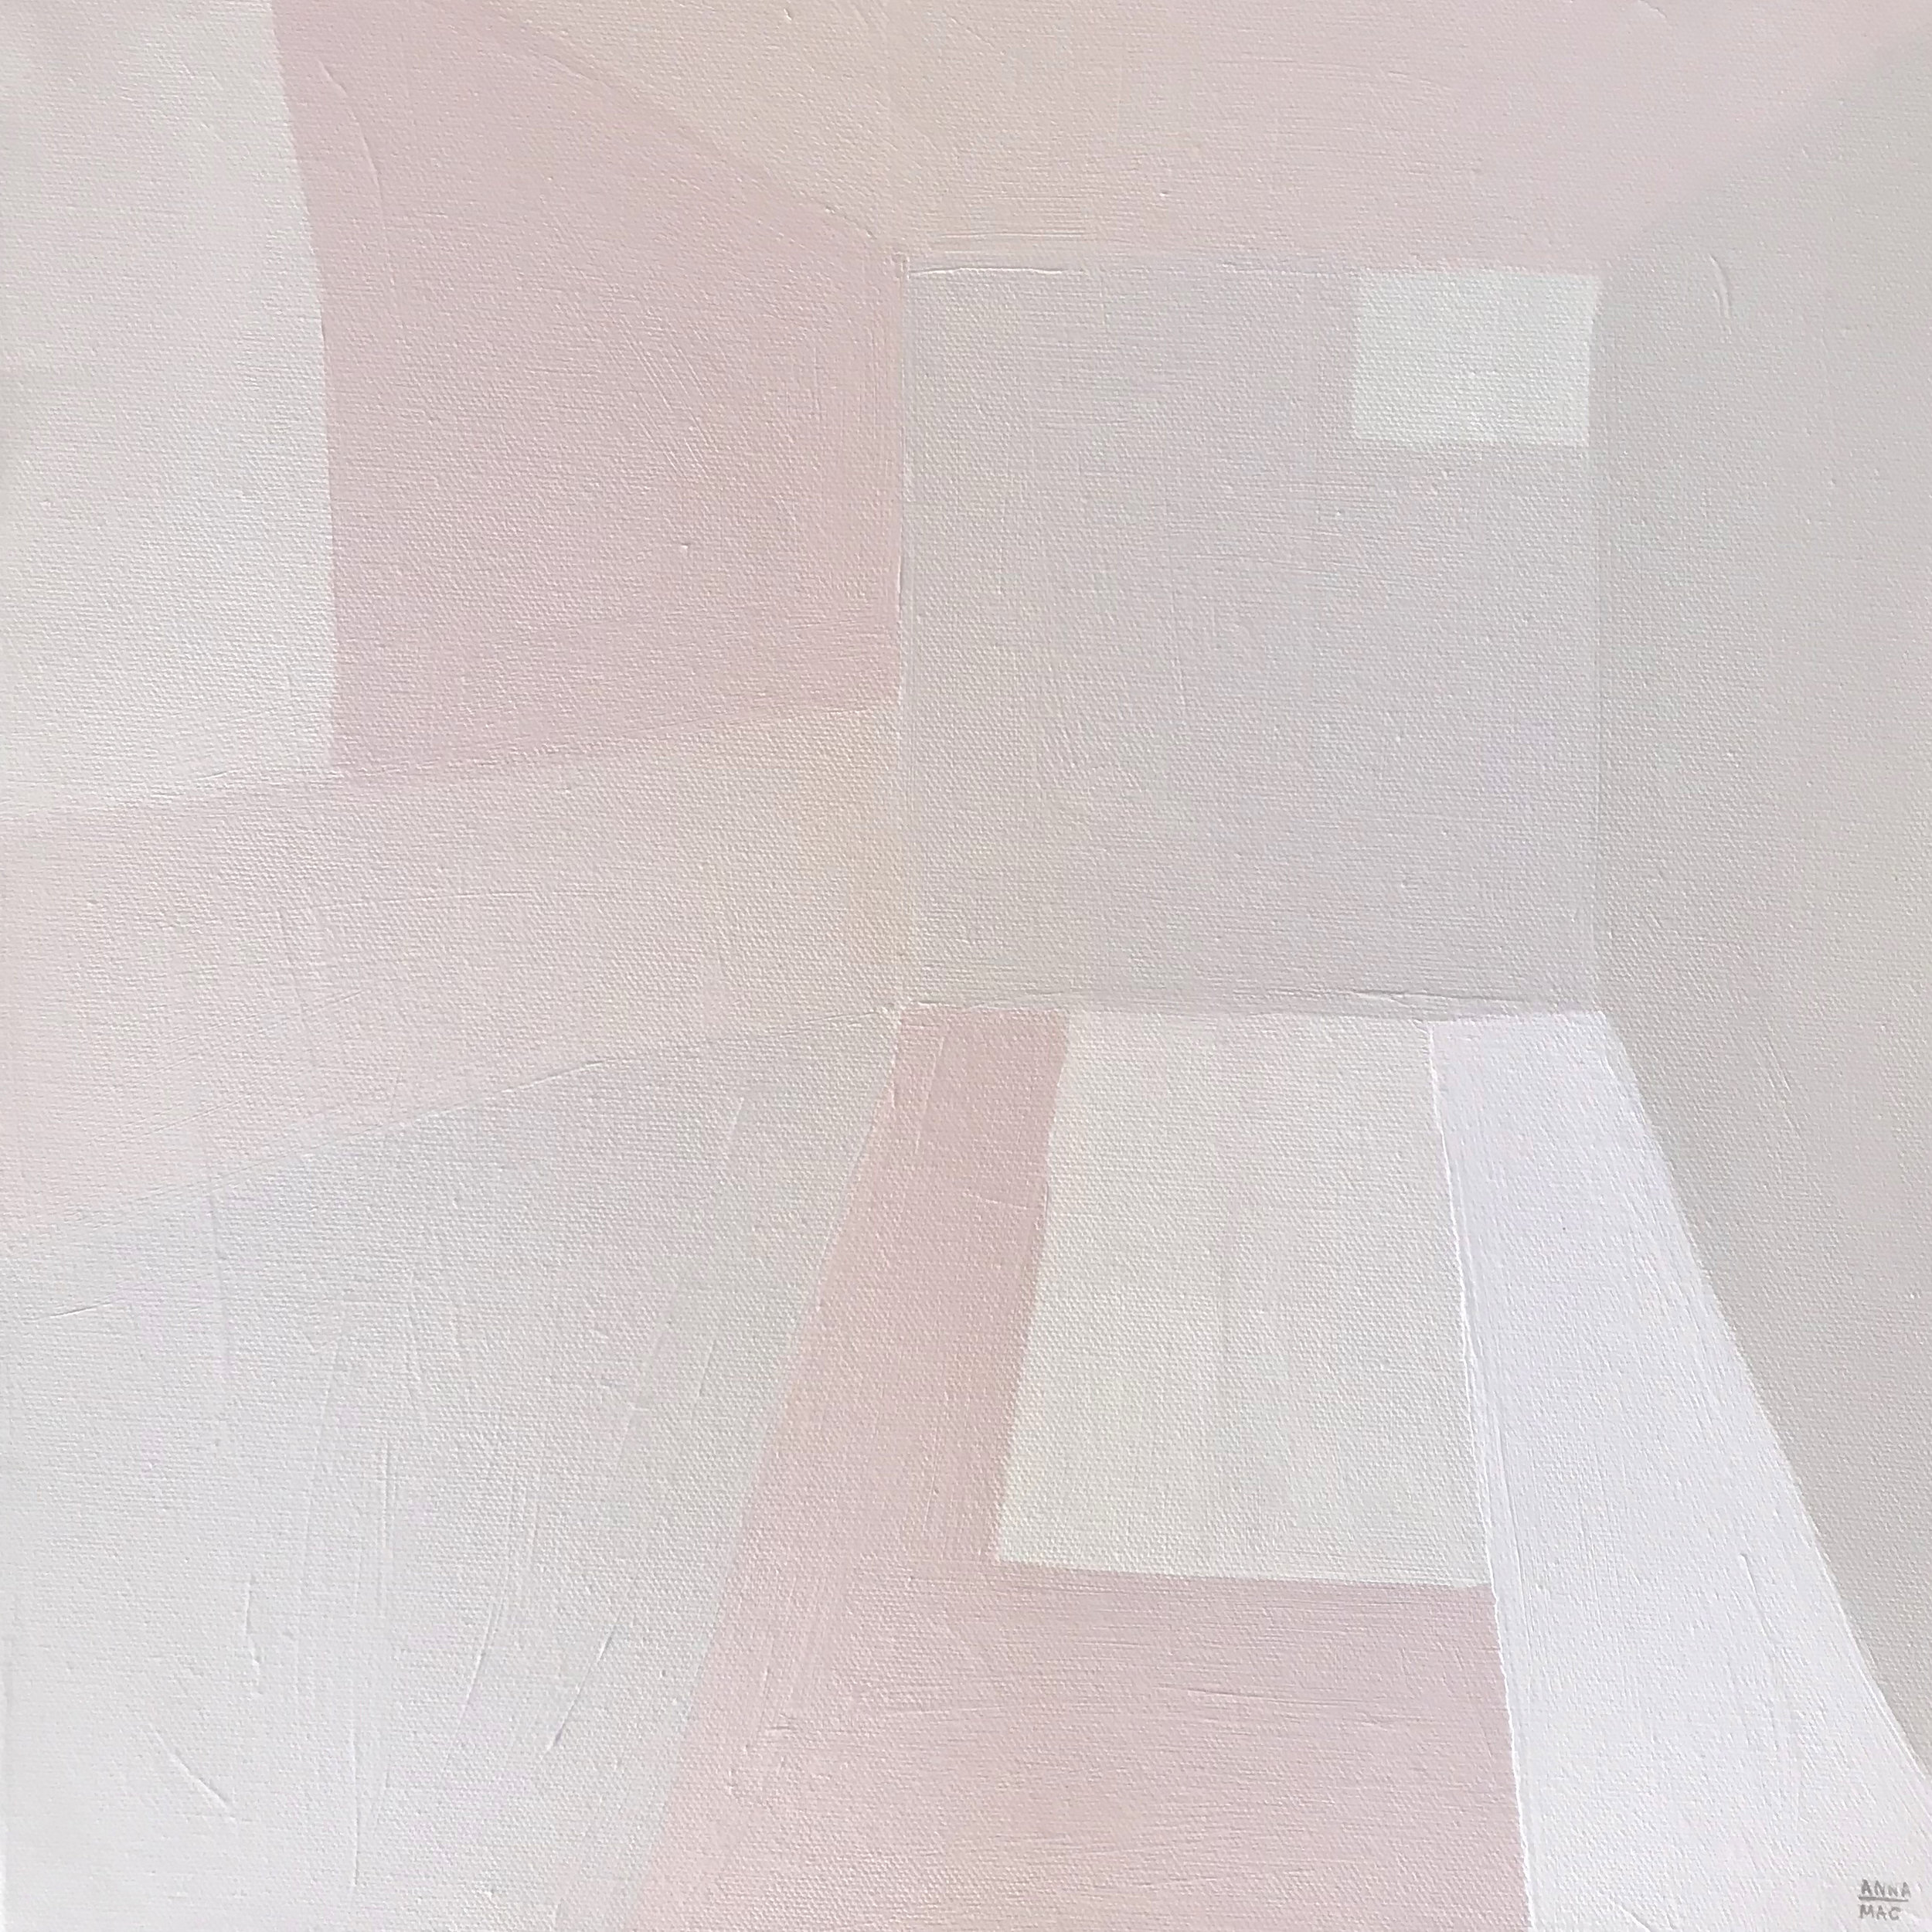 SOLD - 'Empty room, busy mind no.6'